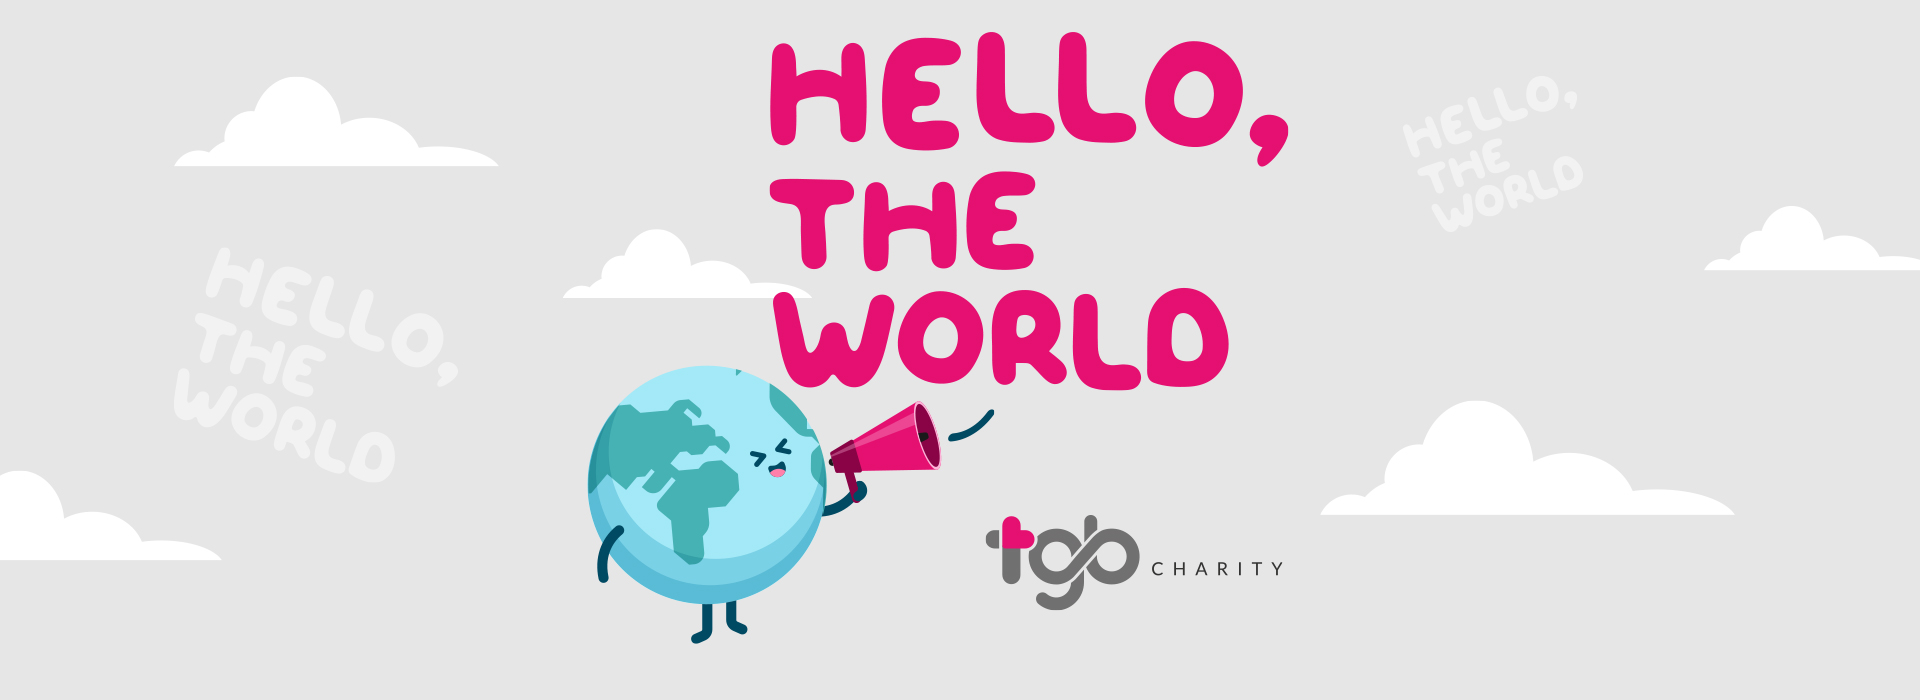 TGB Charity's new website is ready to say HELLO to all of you!